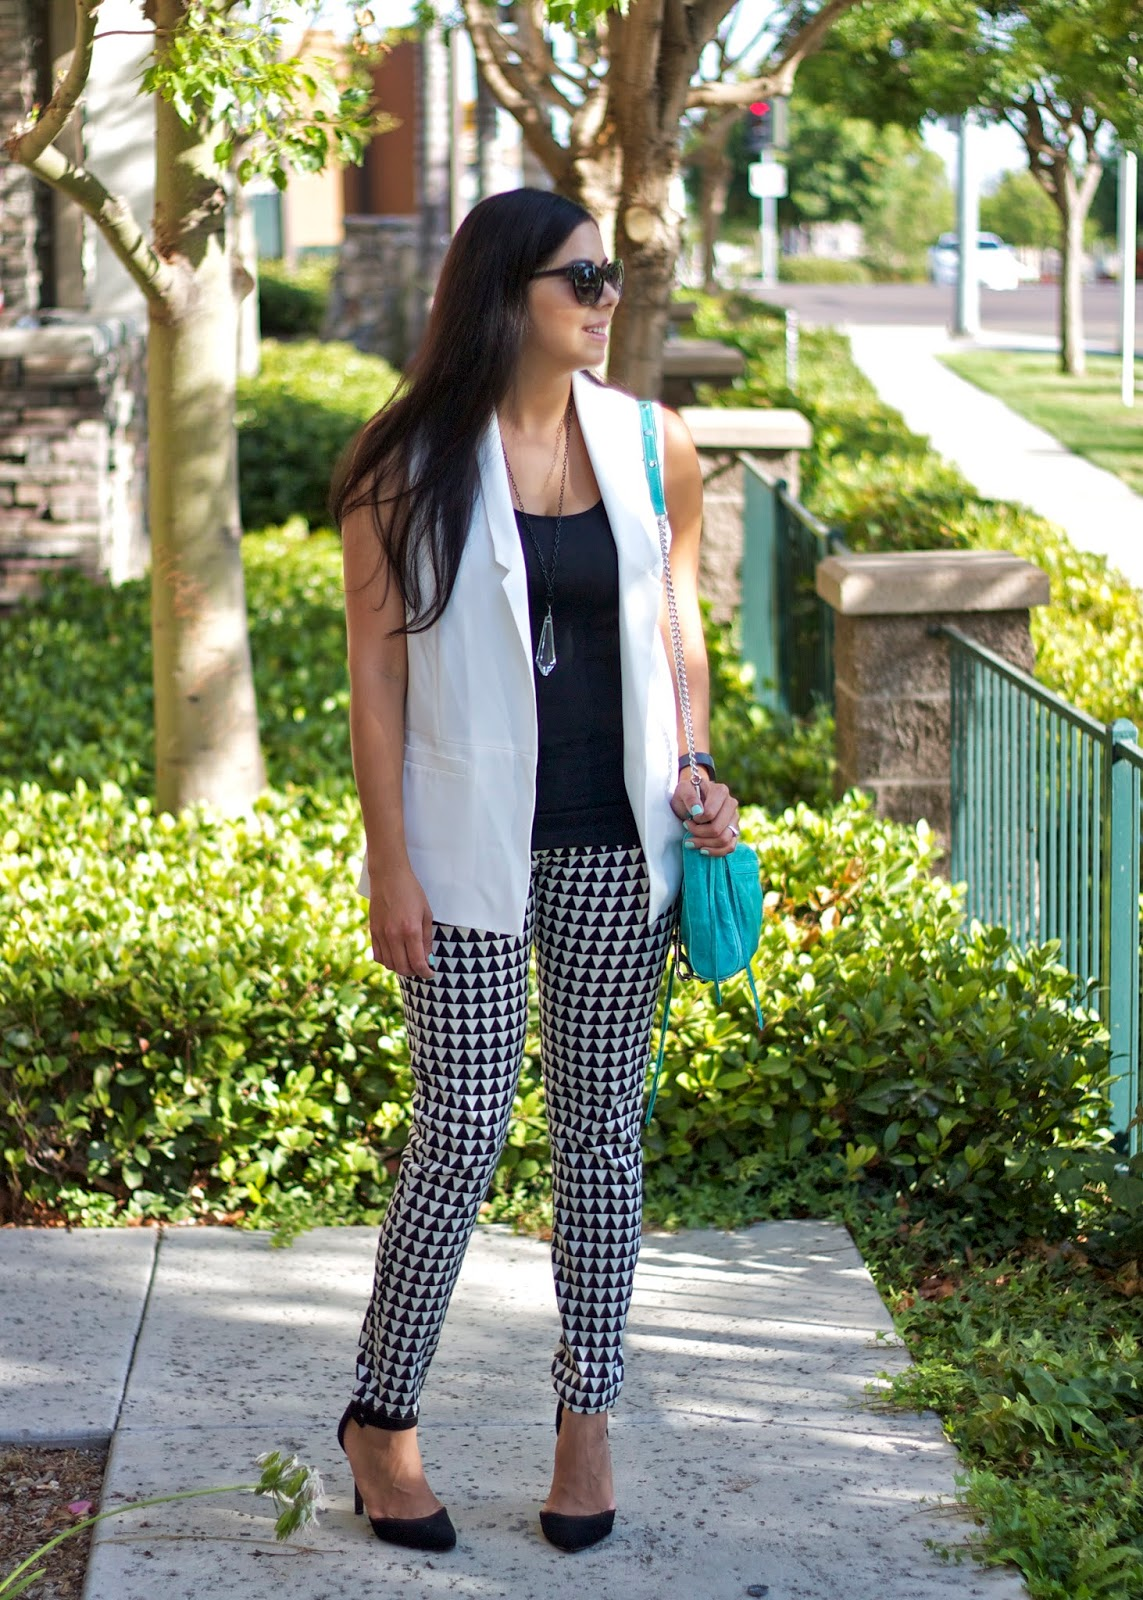 Sleek black and white look, geo print pants, geometric print pants, f21 geo print pants